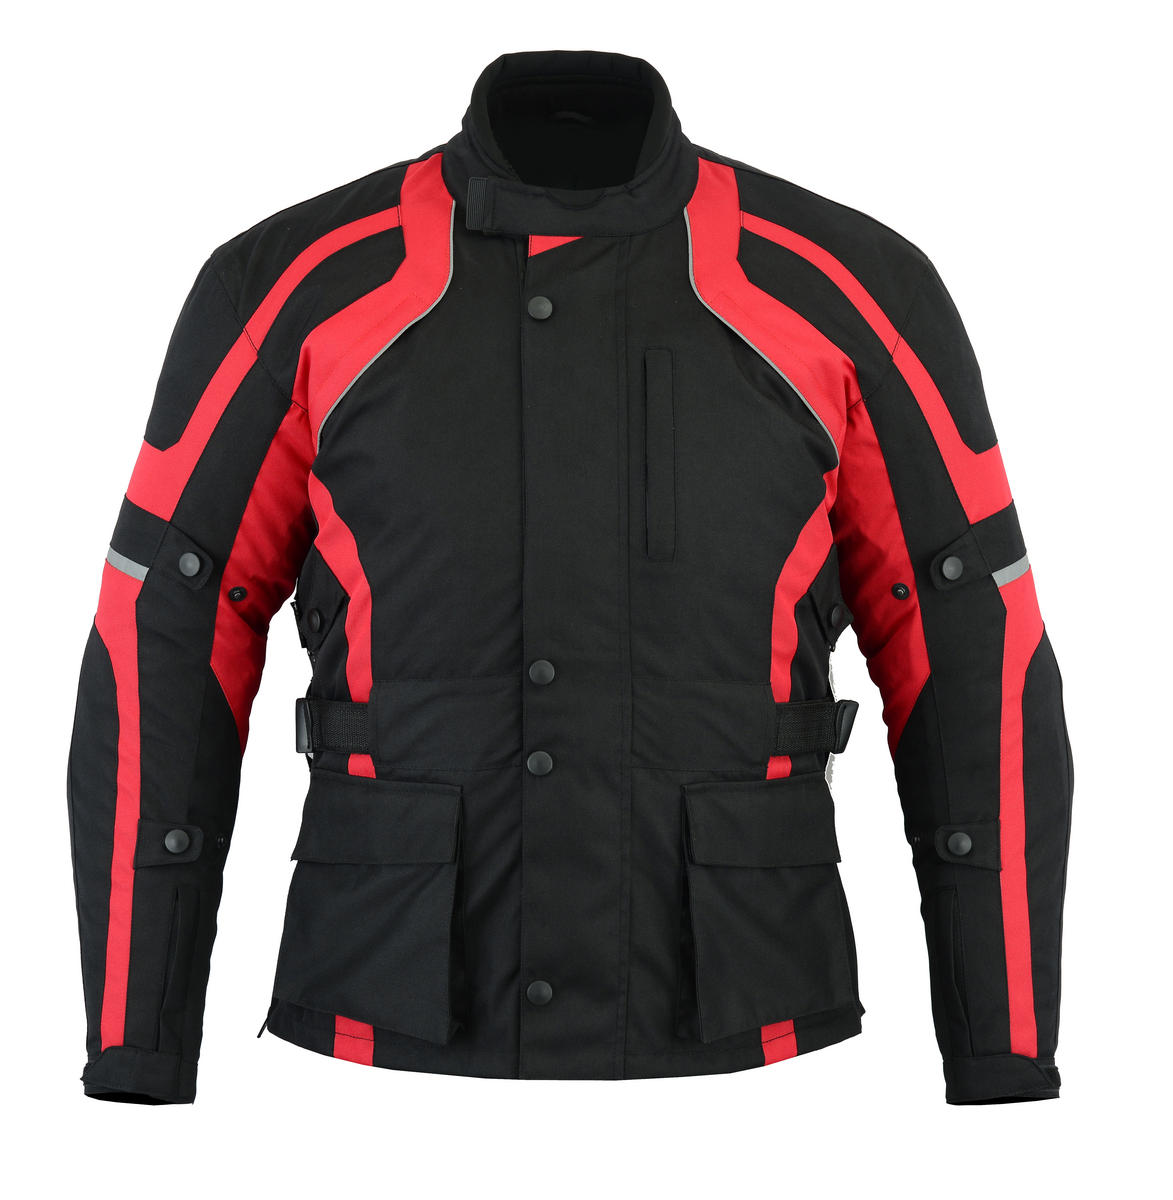 Texpeed Black & Red Cordura Jacket